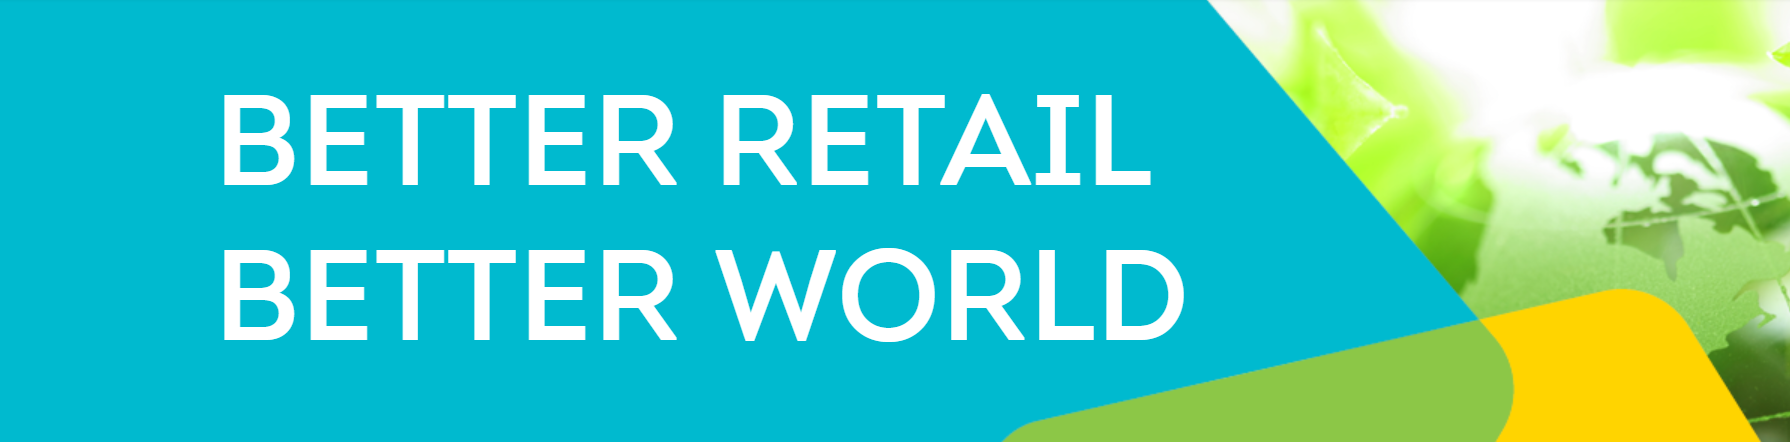 Better Retail, Better World